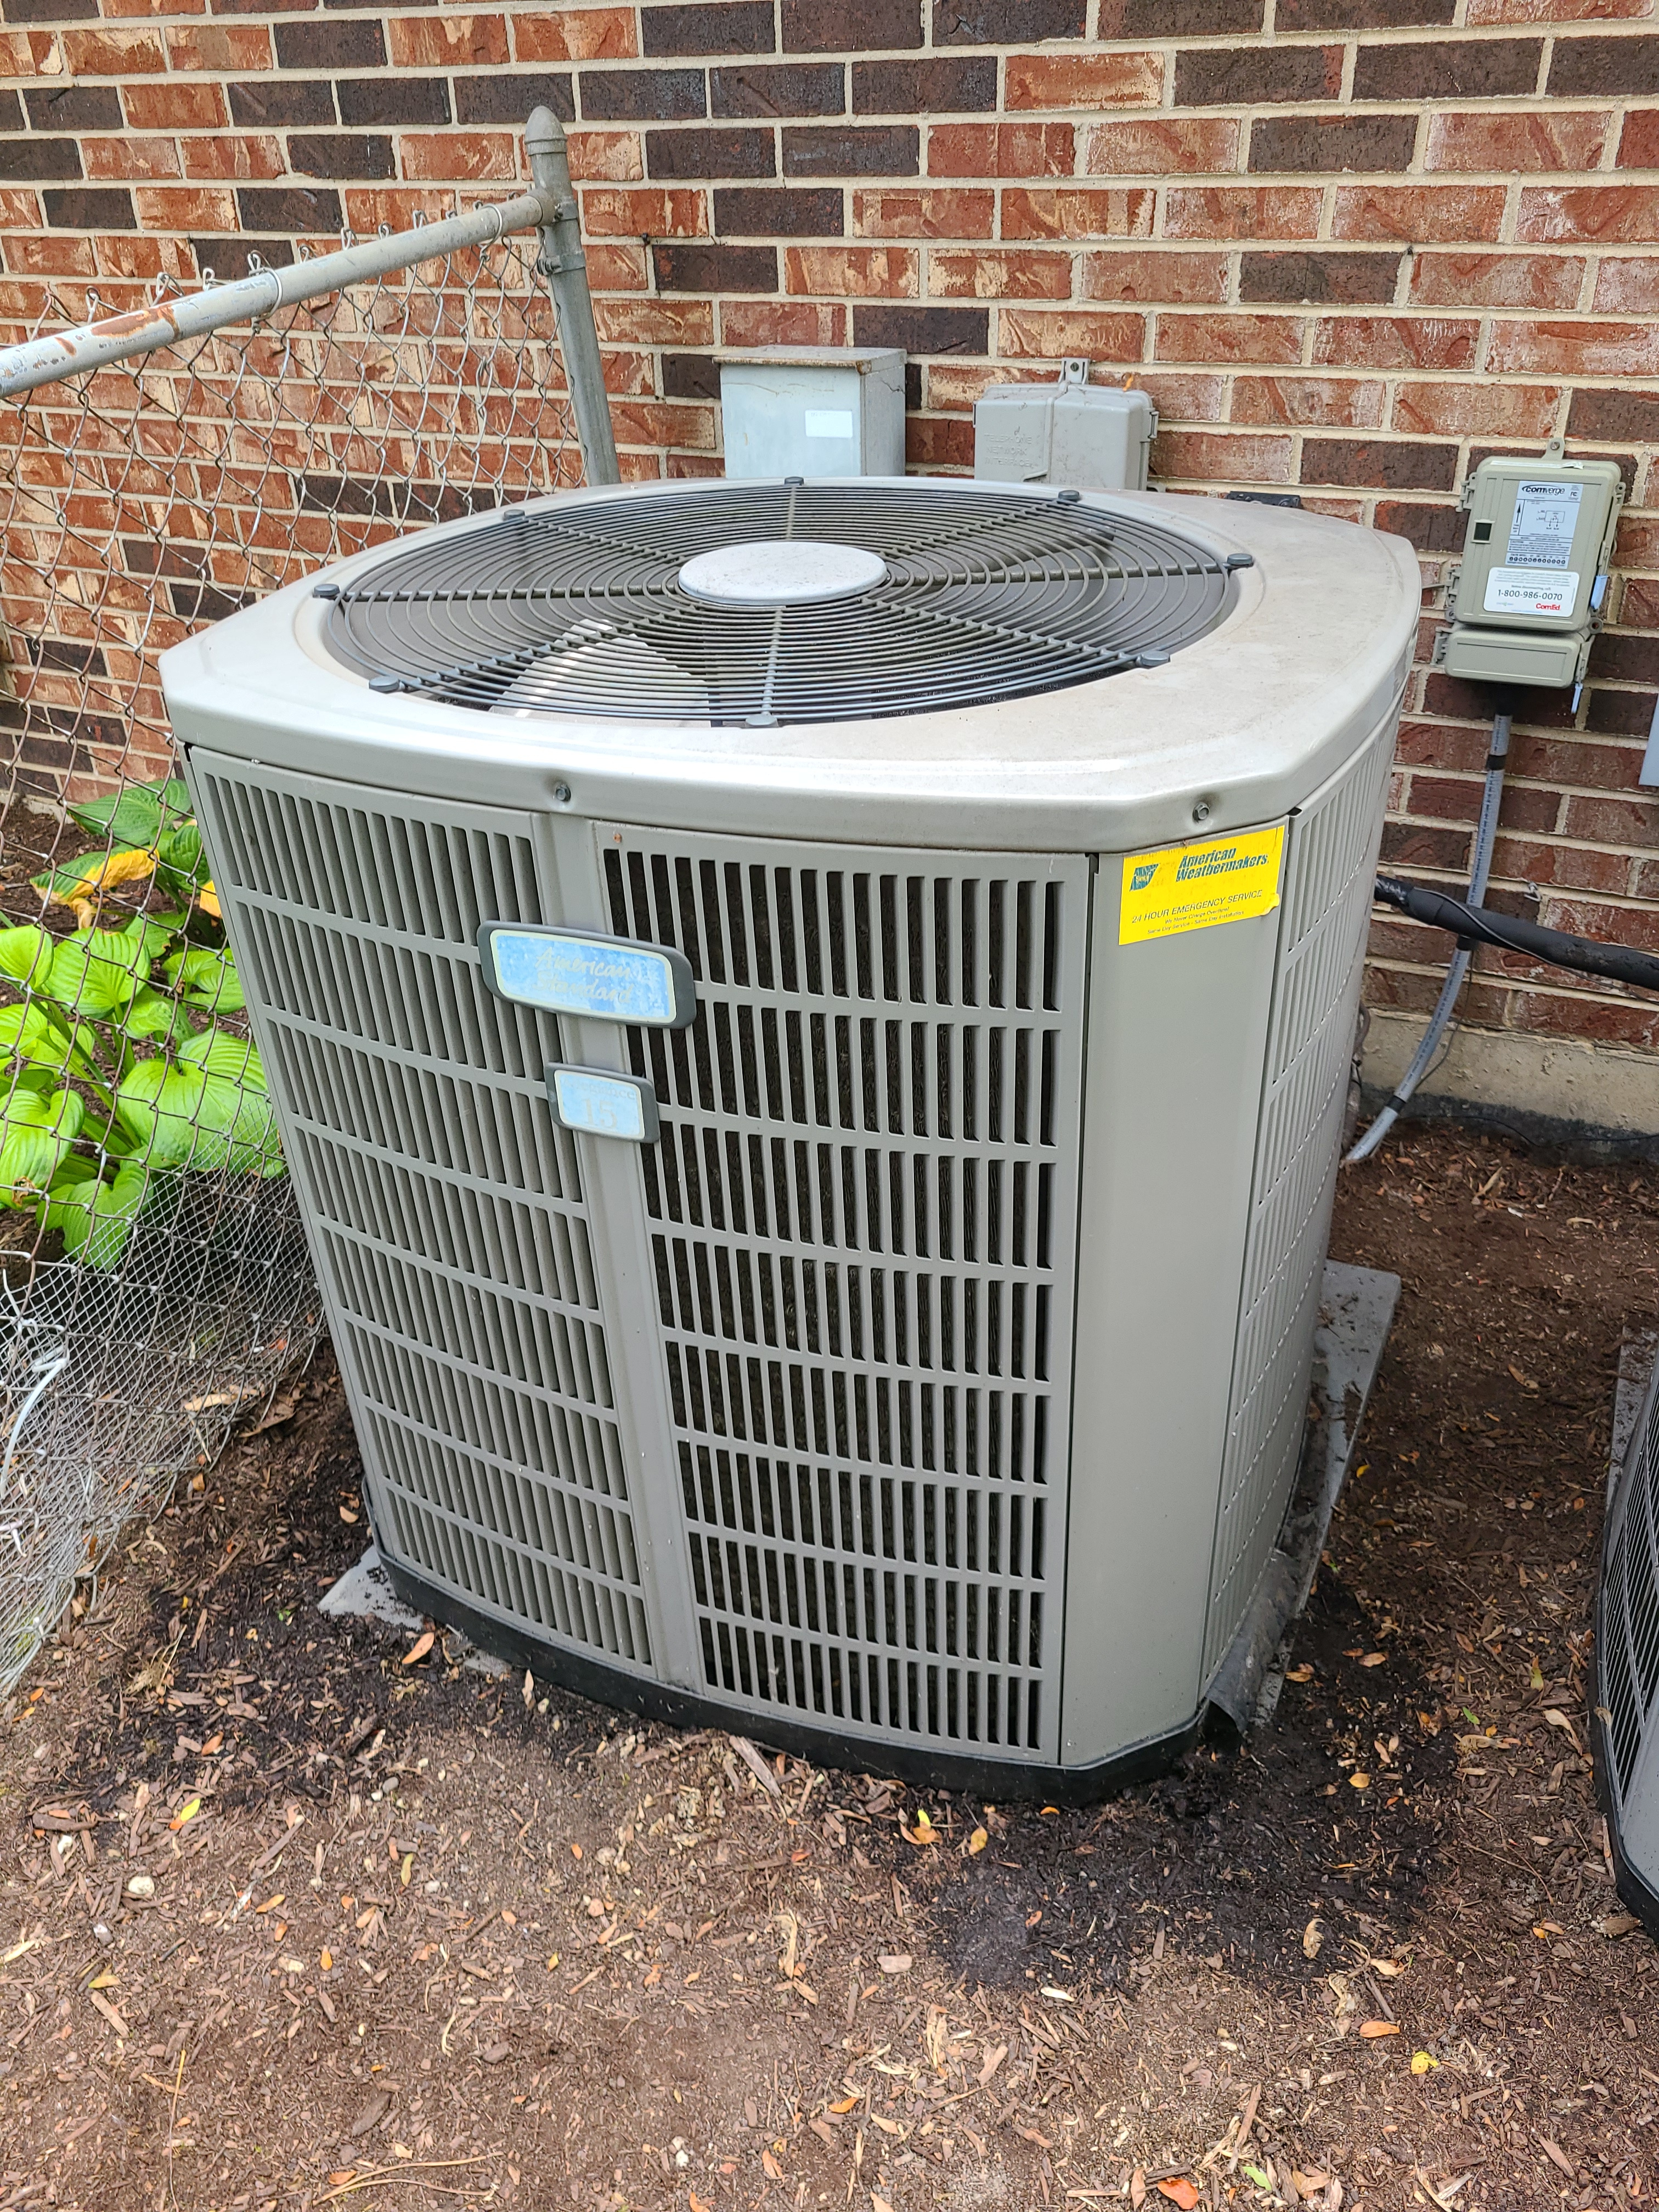 Air conditioning issue diagnosed with bad coil system to be replaced